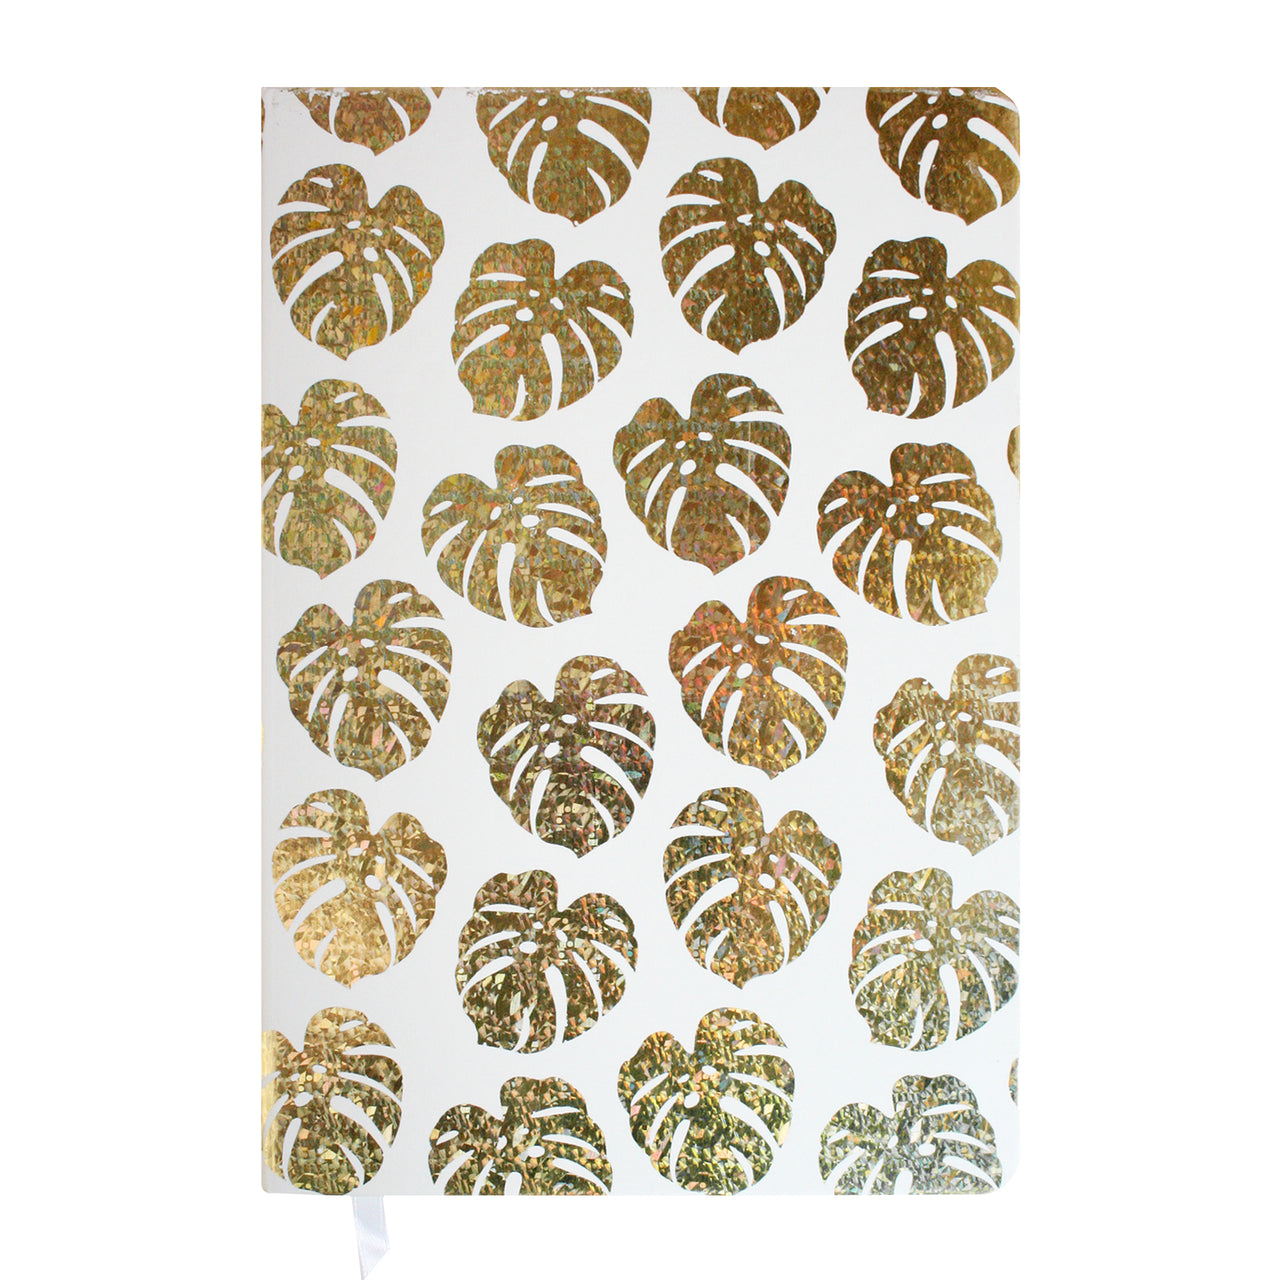 A5 Shiny Leaves Print Notebook - Gold - EMARTBUY